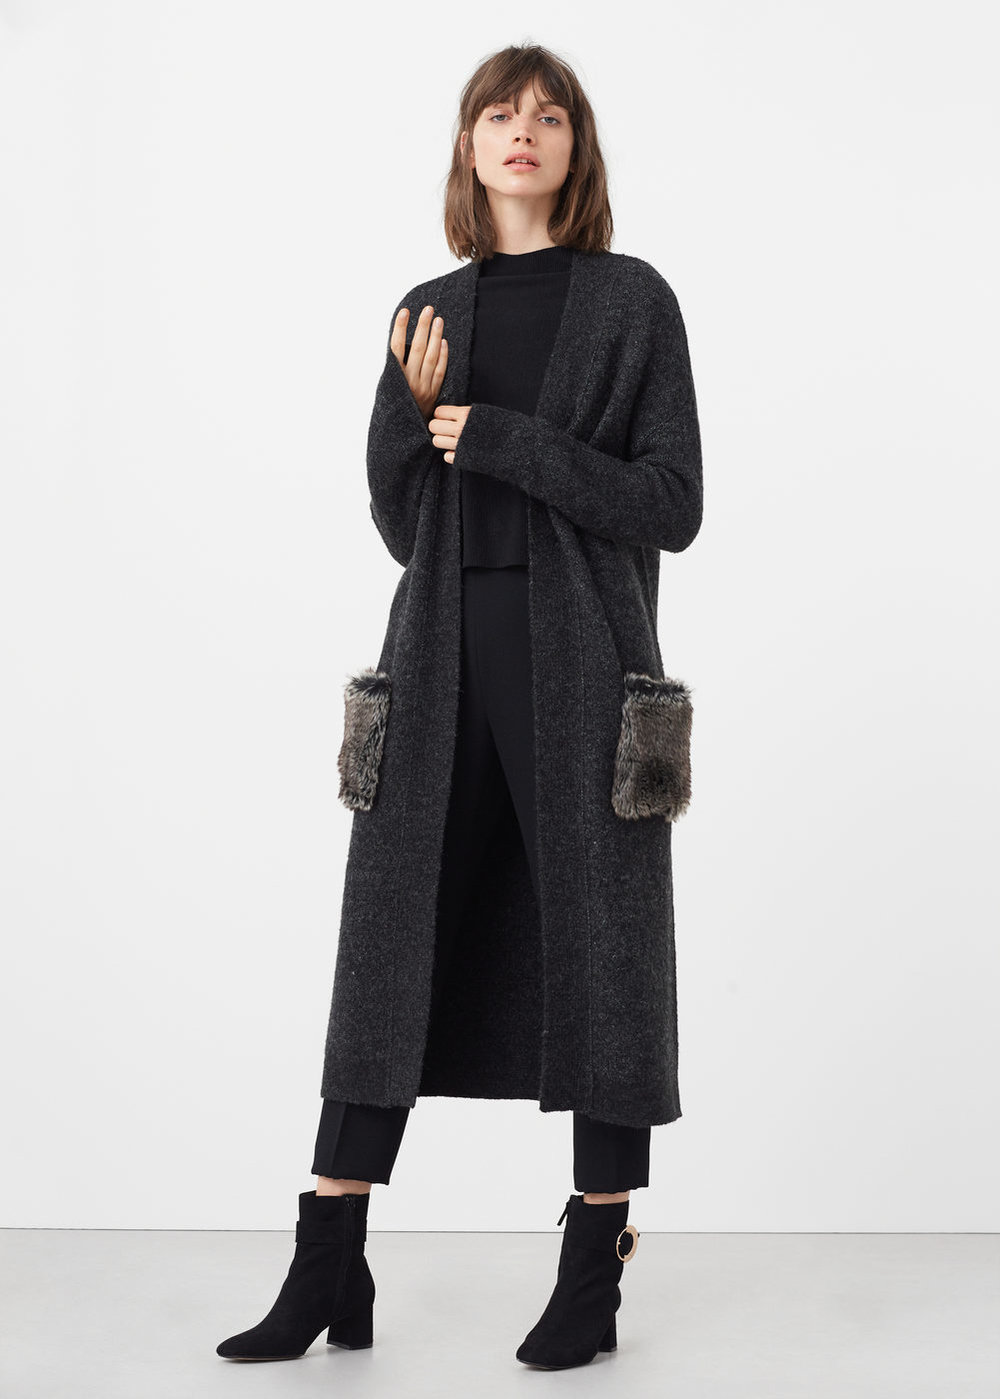 I love long cardigans like   this one  , and the faux fur pocket adds a nice touch.